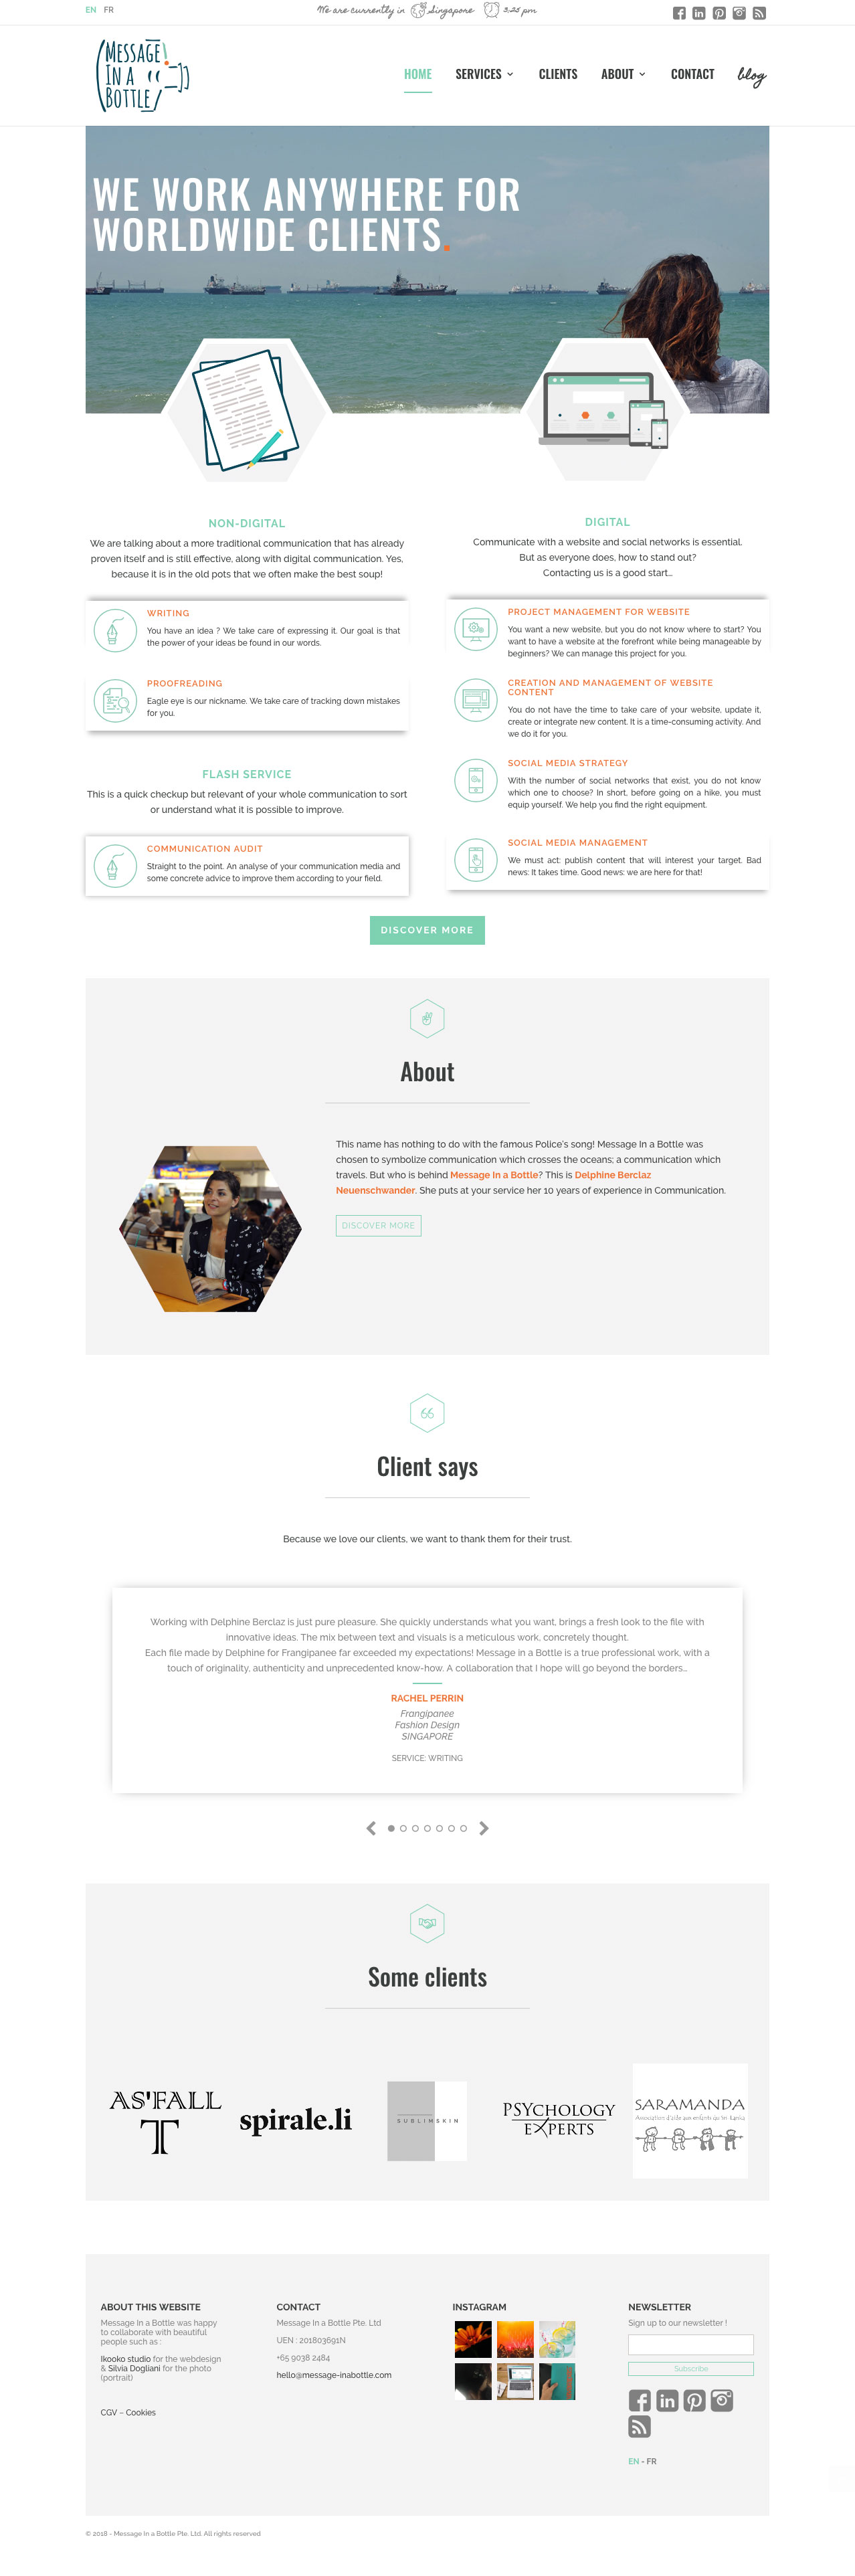 Made By You has created the website of Message In a Bottle, communication agency